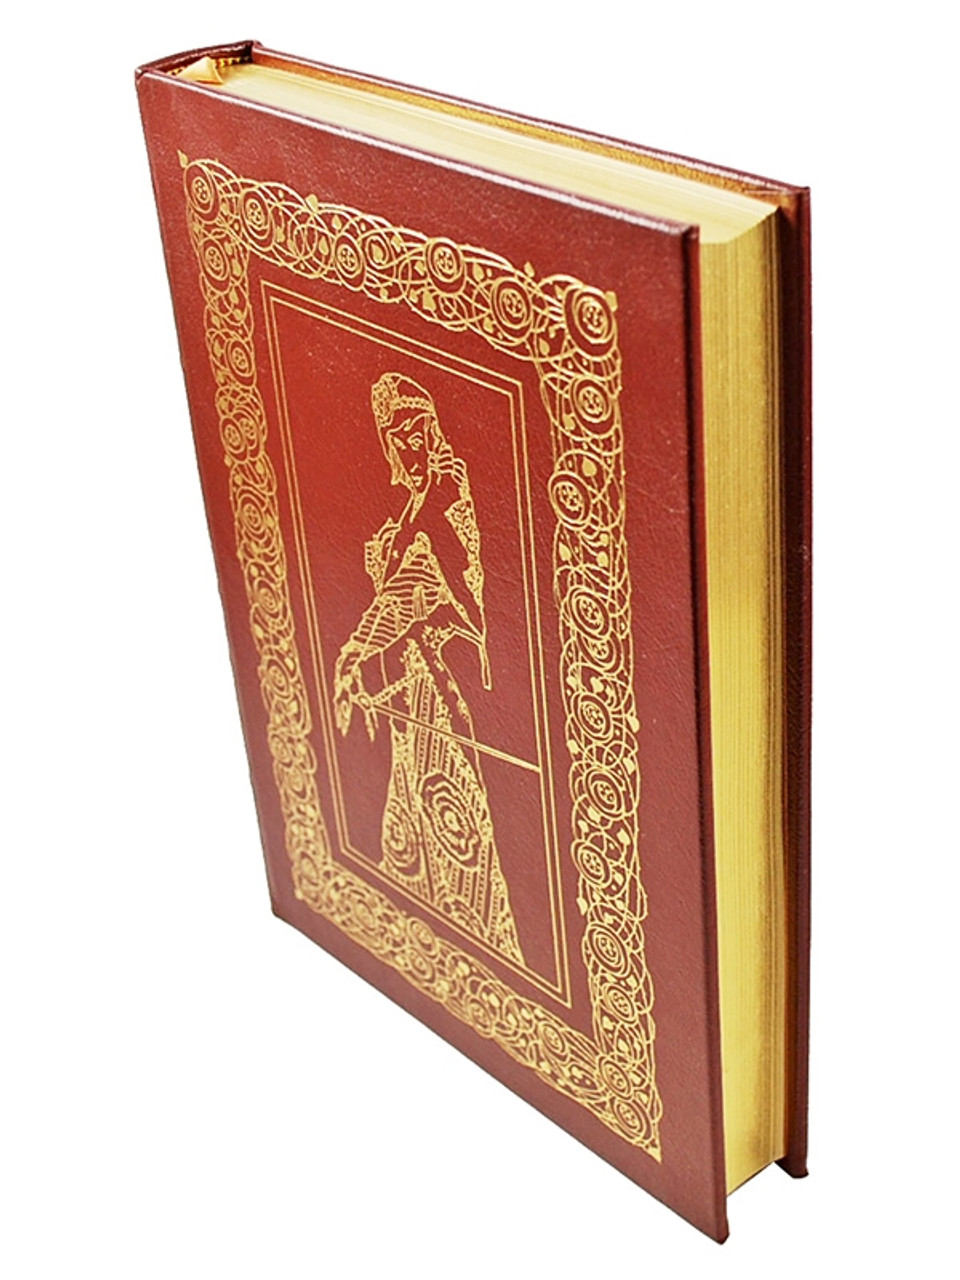 """Easton Press, Johann Wolfgang von Goethe """"Faust"""" Leather Bound Collector's Edition - Collector's Library of Famous Editions"""